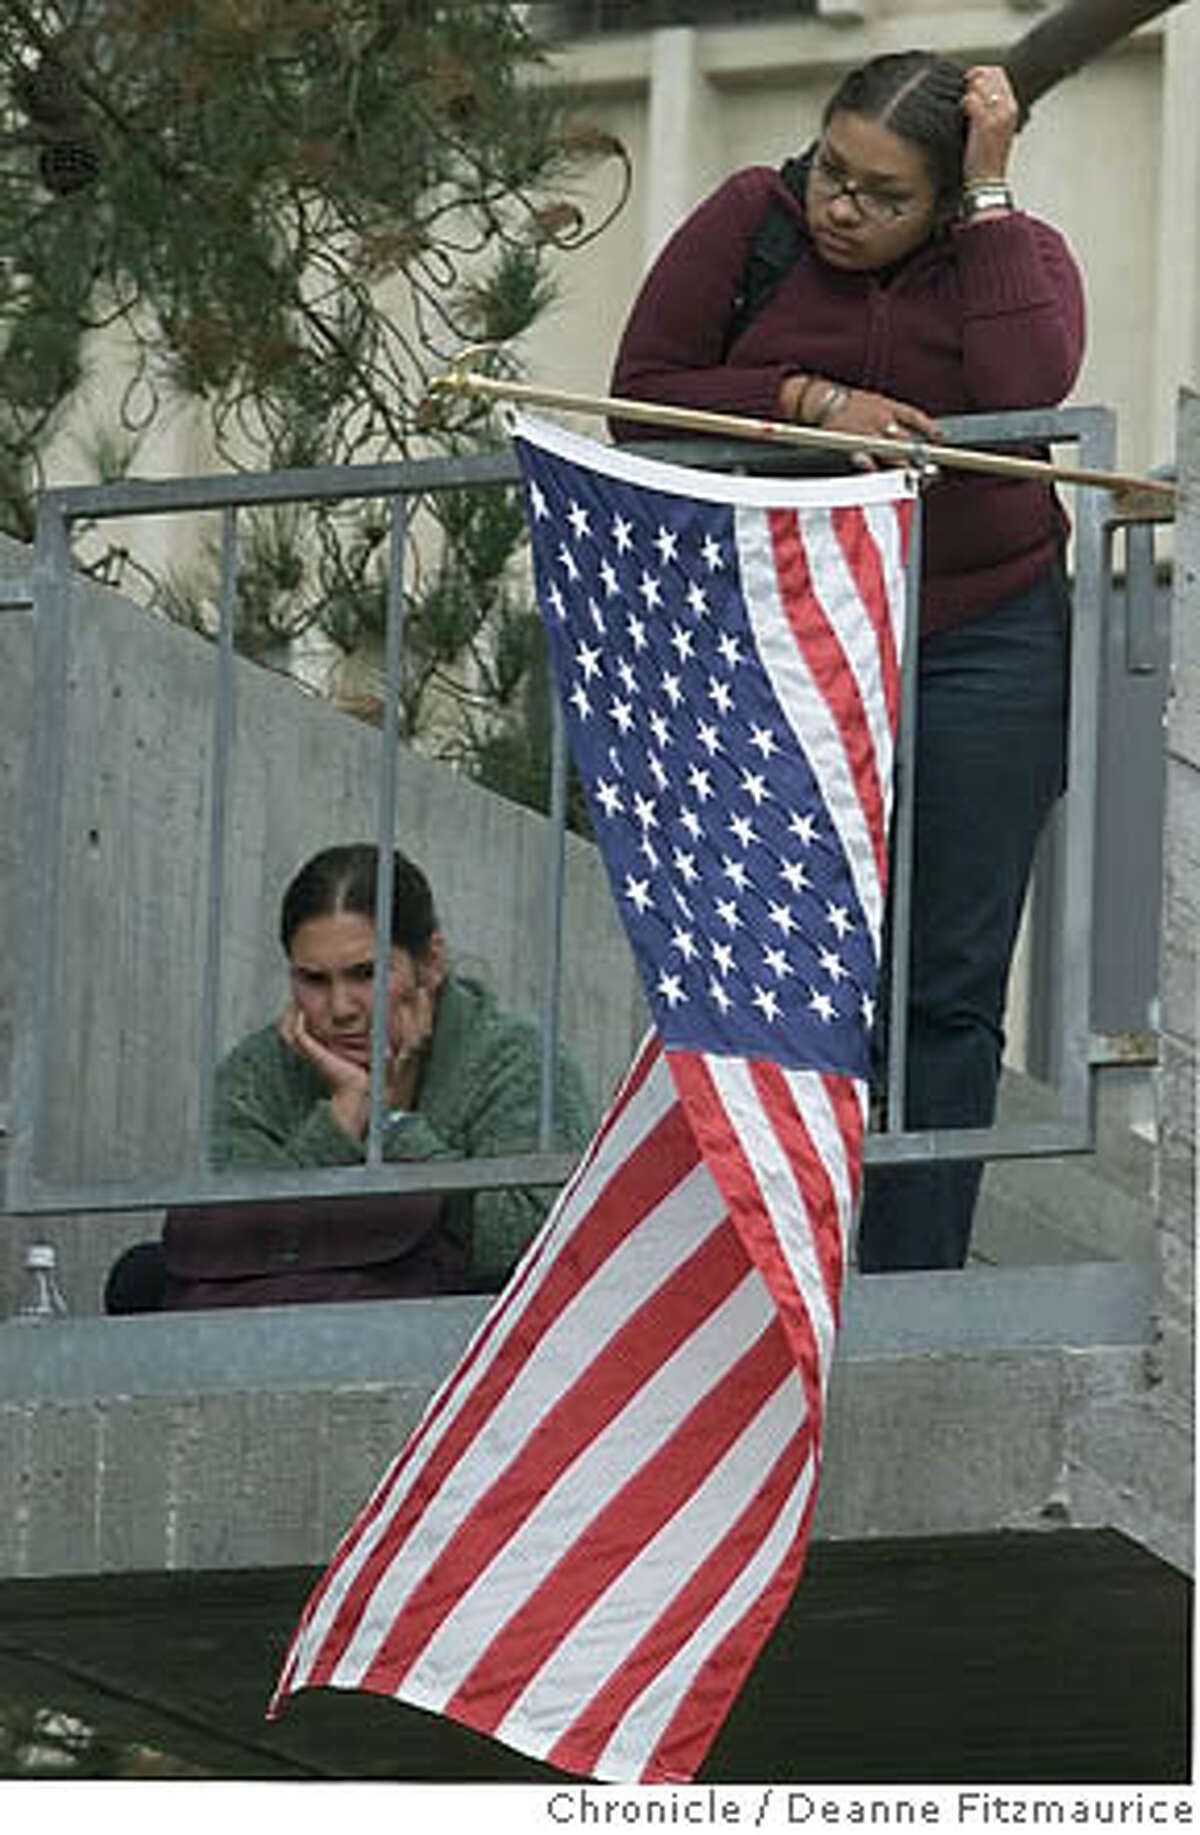 Naomi Gregory (left) and Elizabeth Solis listen to speakers at SFSU. Chronicle file photo, 2001, by Deanne Fitzmaurice